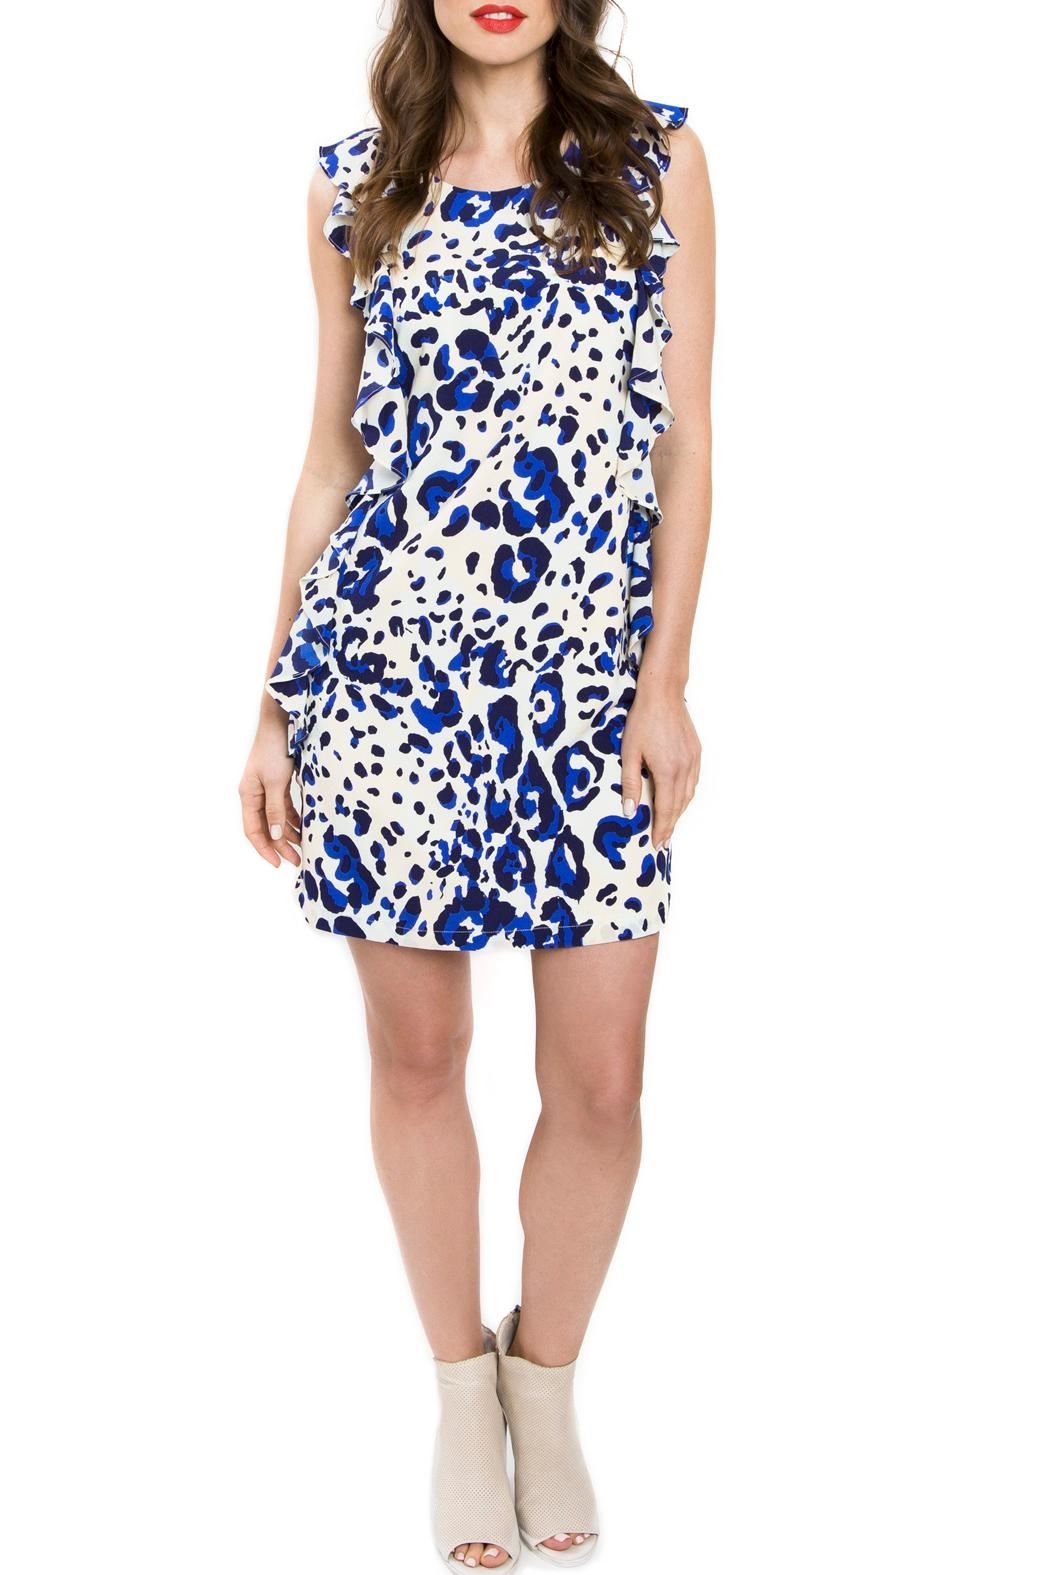 Julie Brown NYC Leah Ruffle Dress - Front Cropped Image